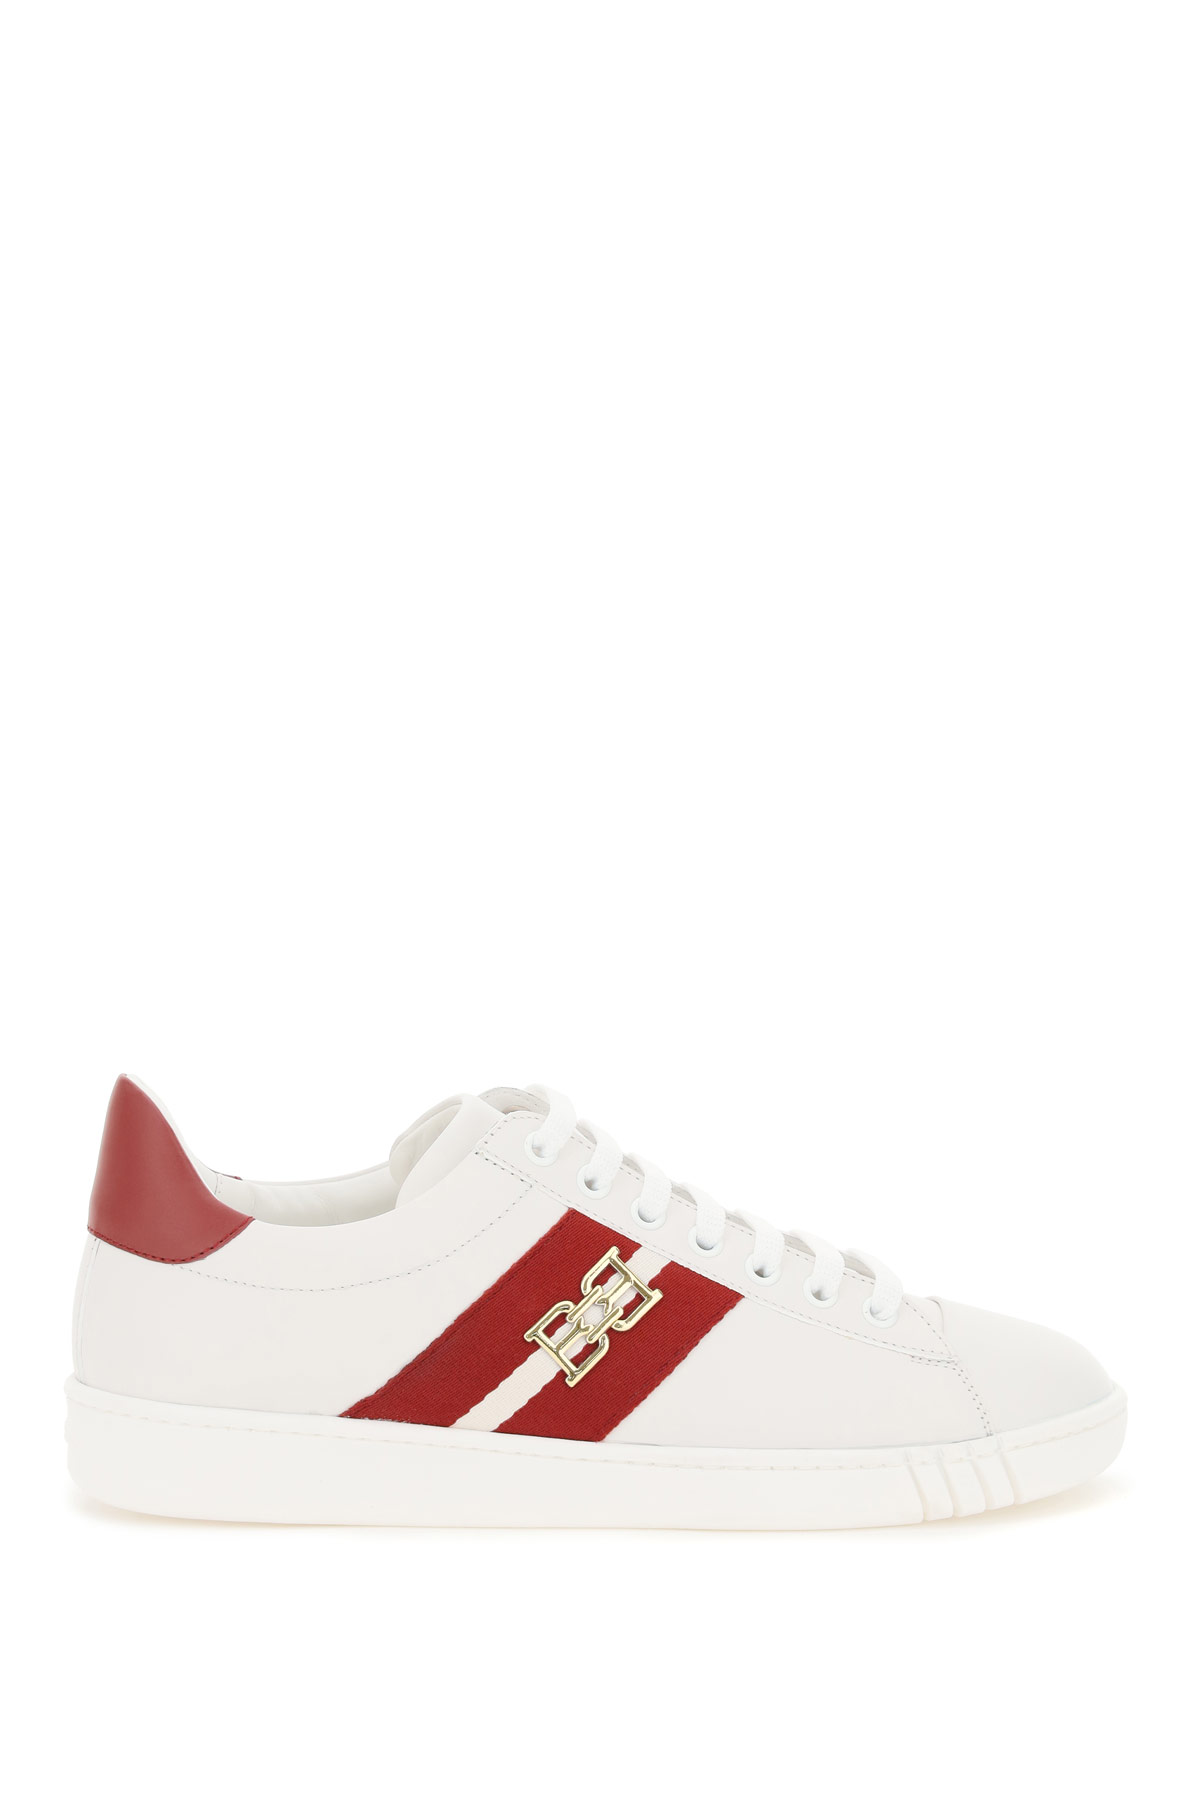 BALLY VIKY SNEAKERS 38 White, Red Leather